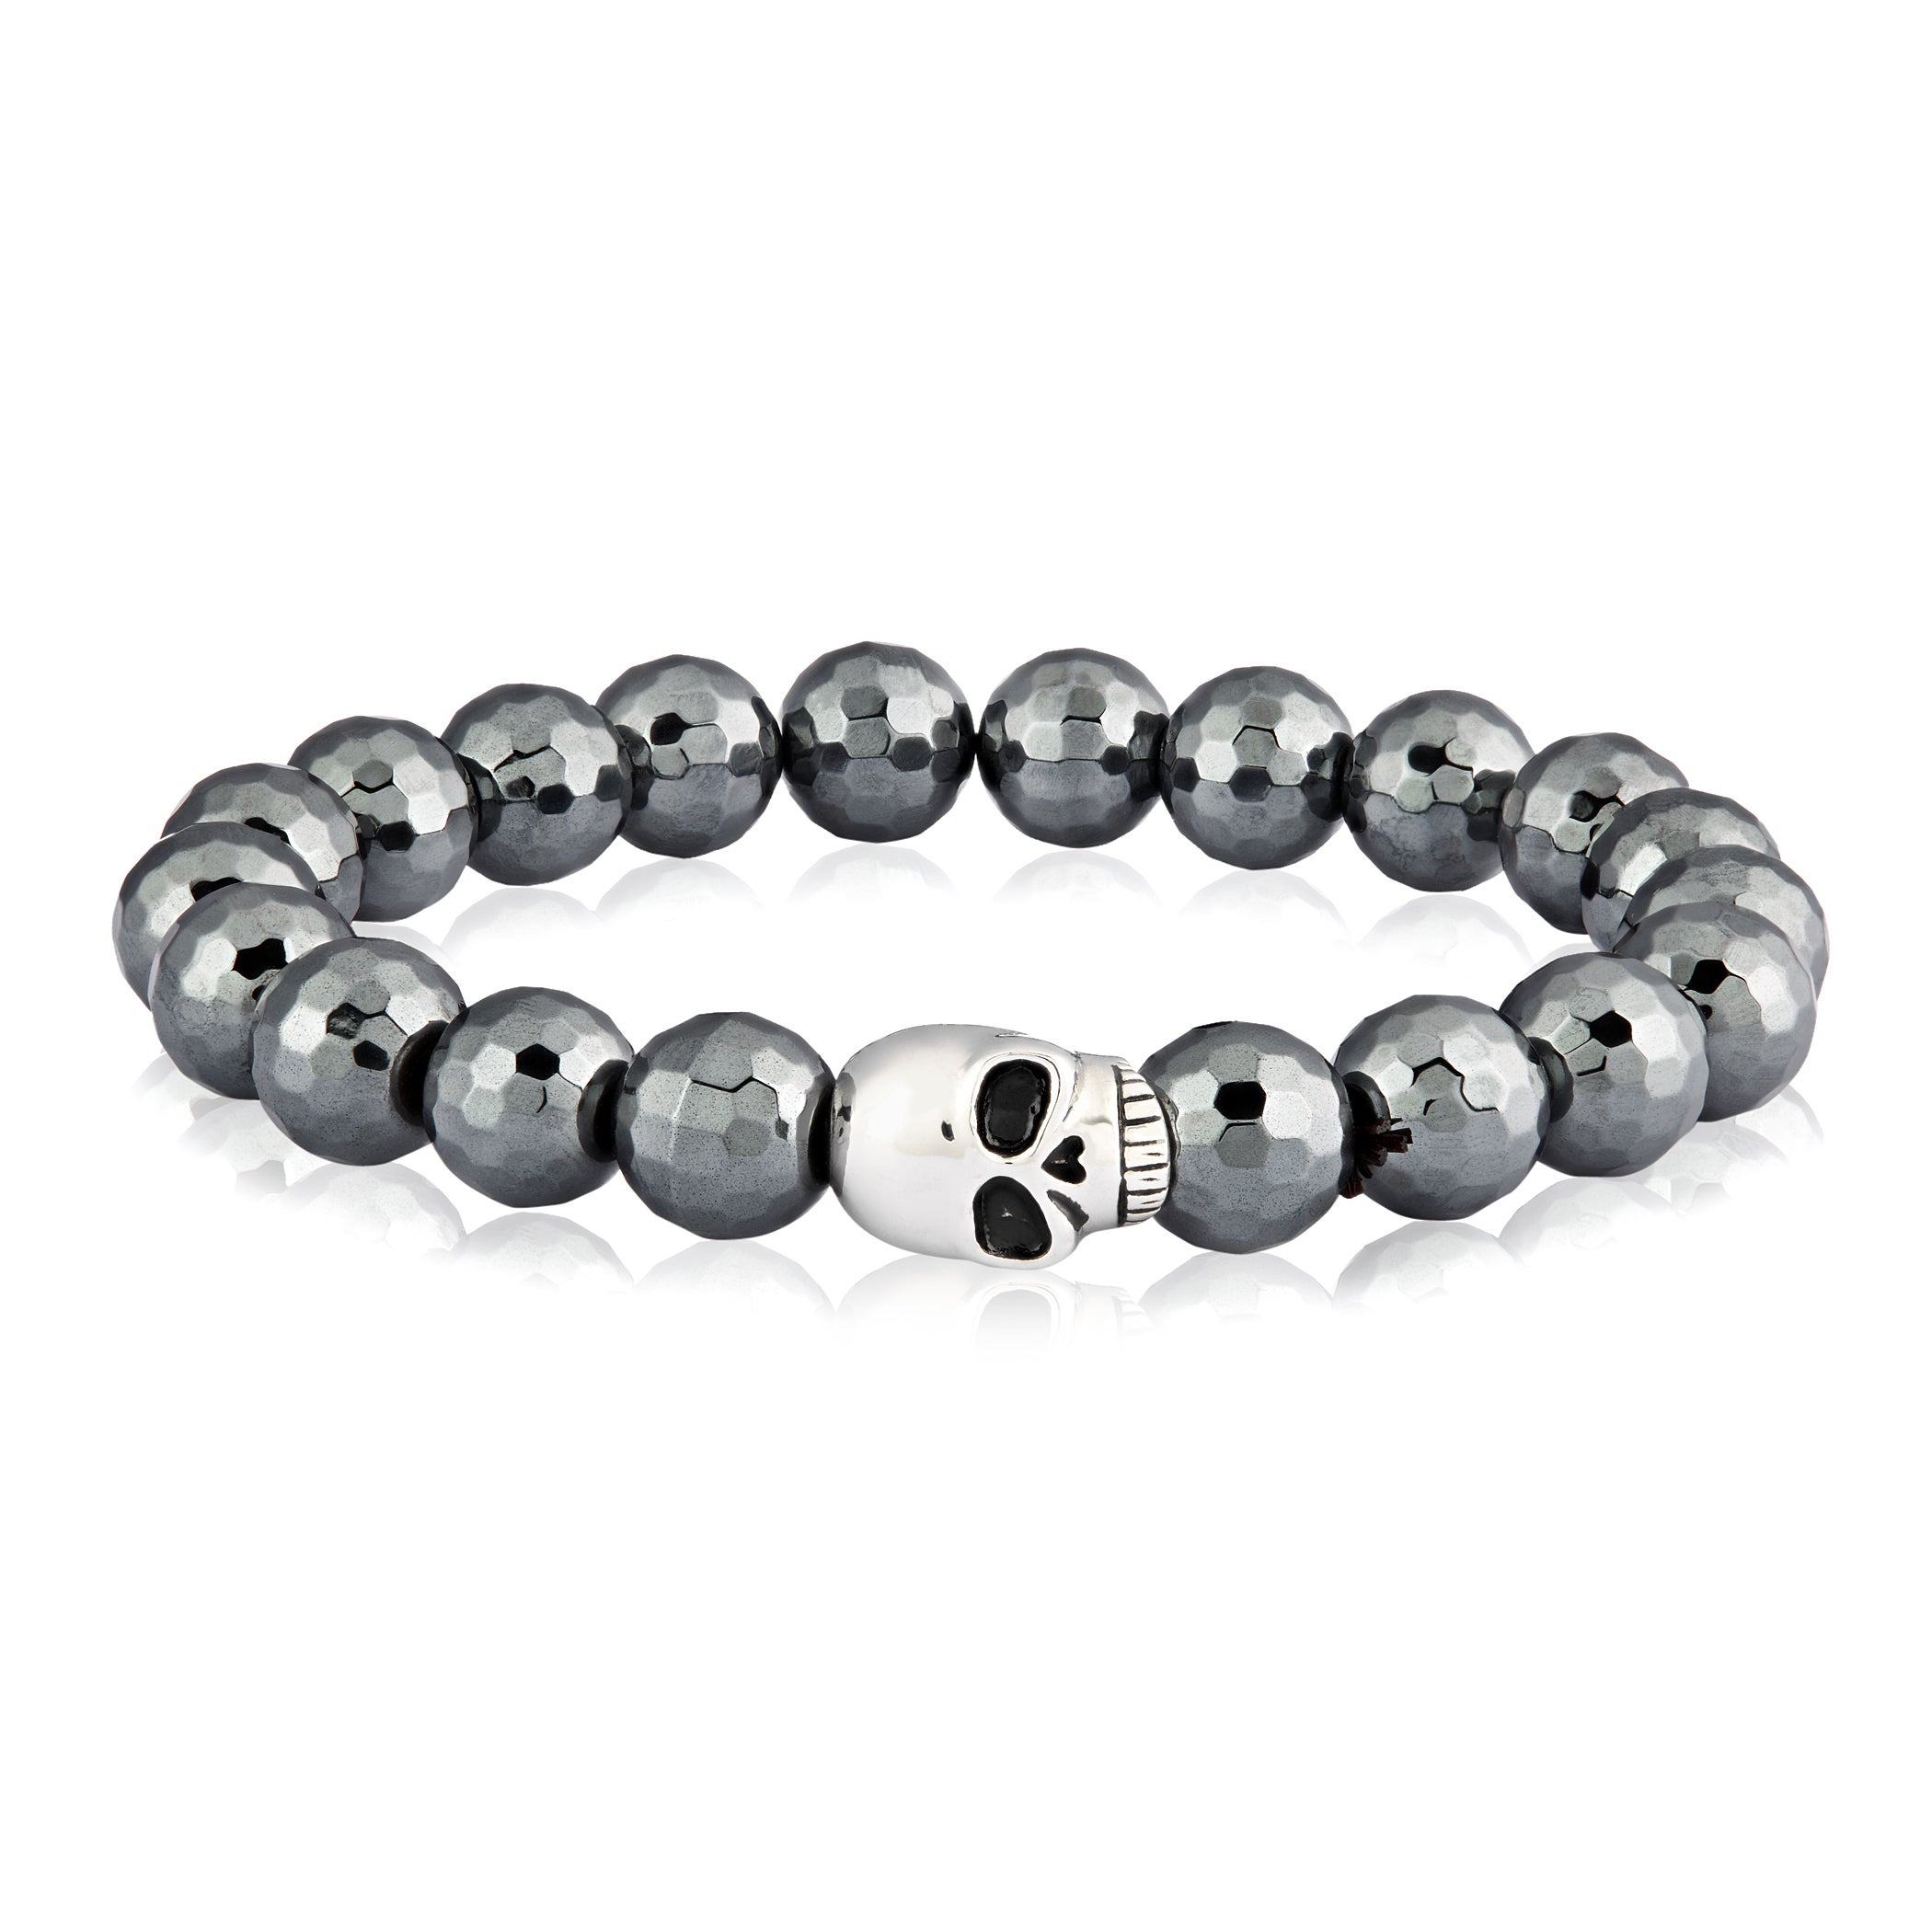 West Coast Crucible Stainless Steel Skull Faceted Hematit...